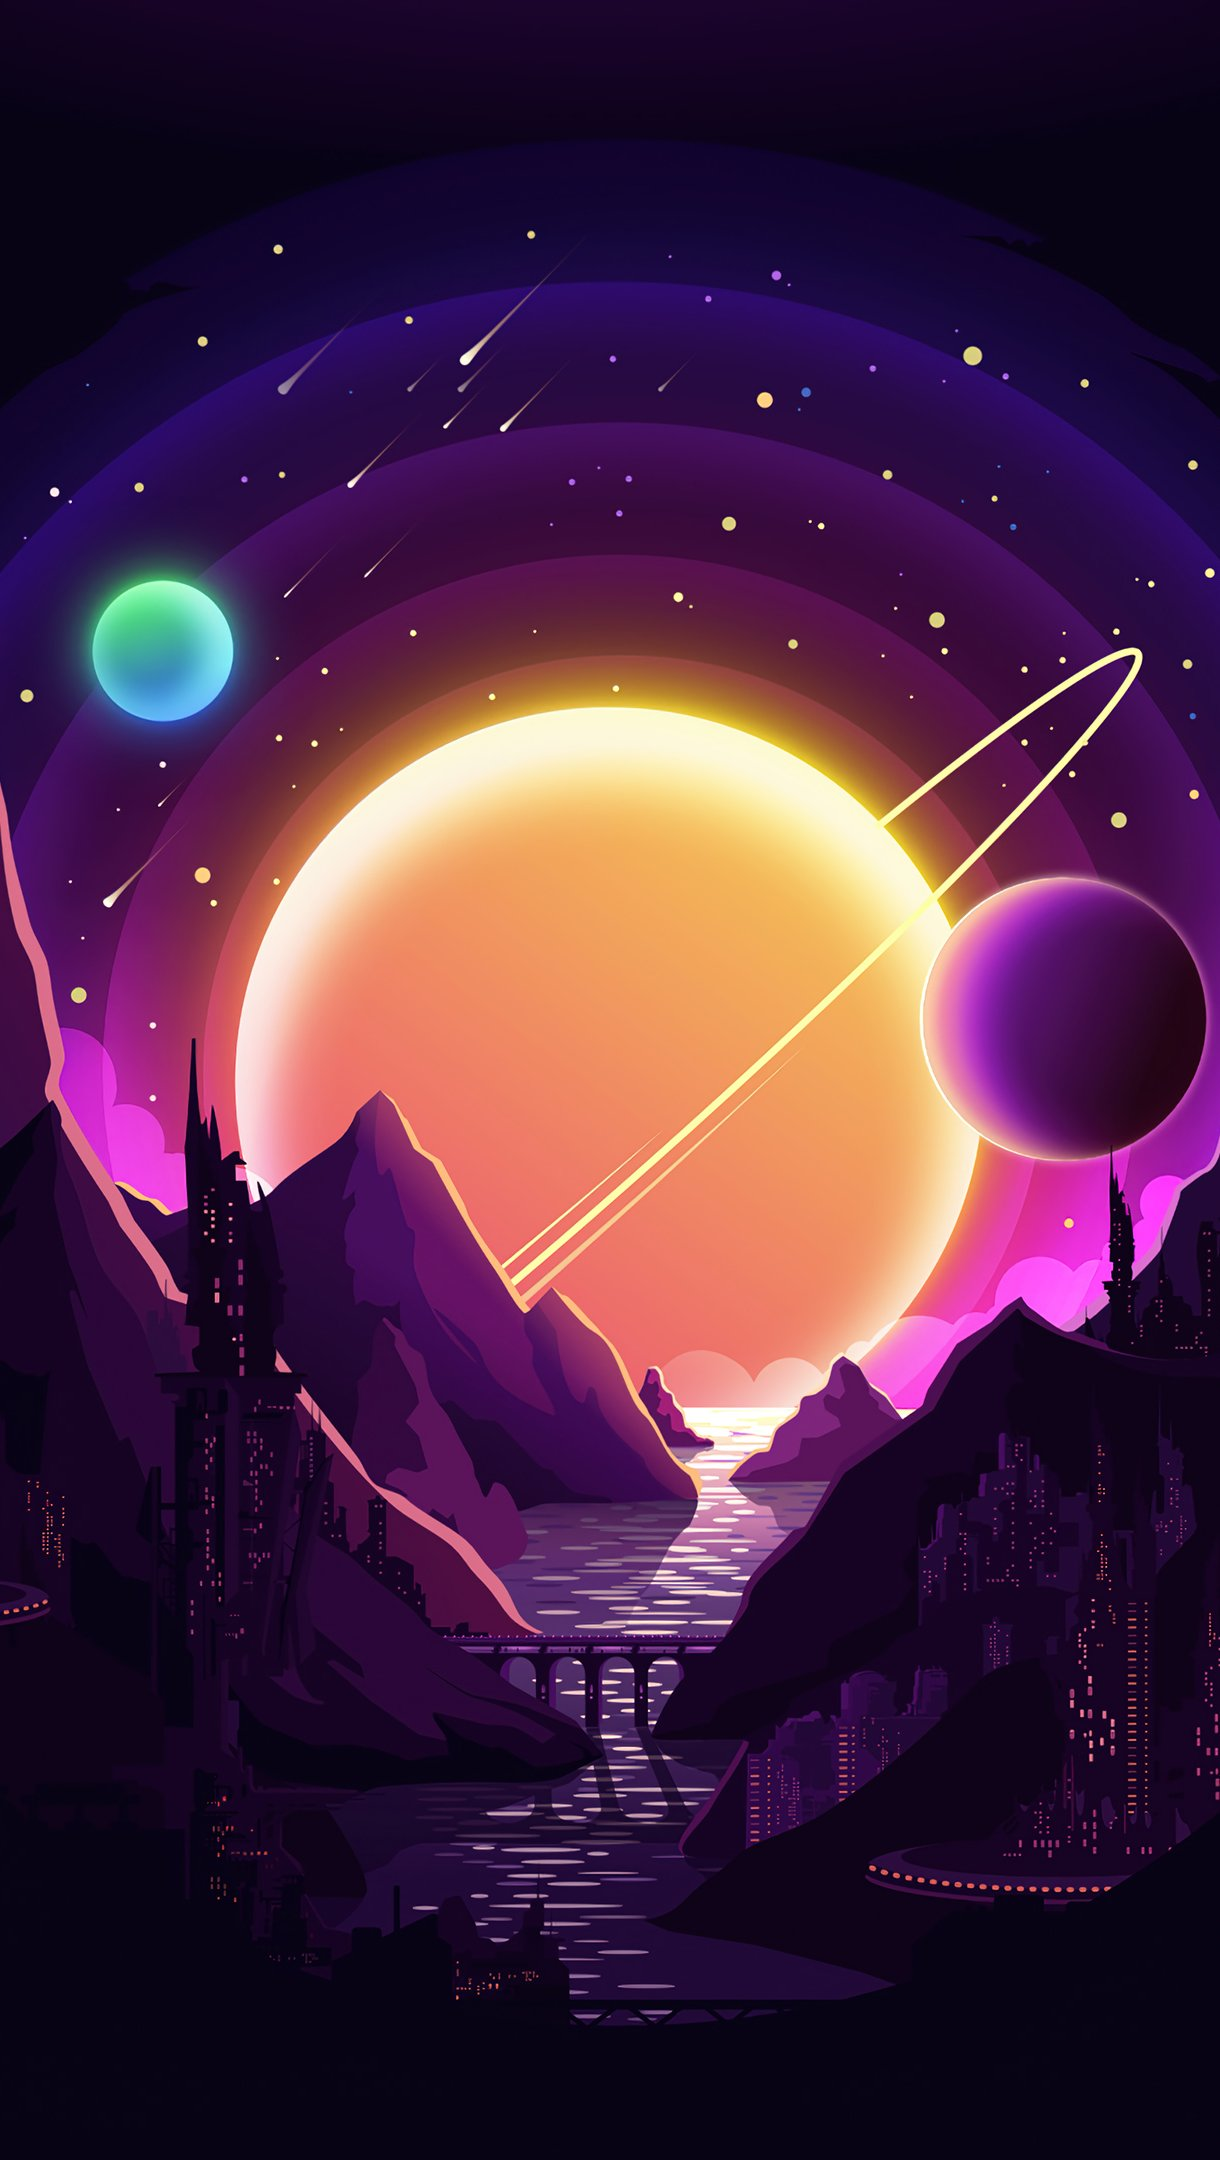 Wallpaper Night in the mountains with planets in the background Vertical